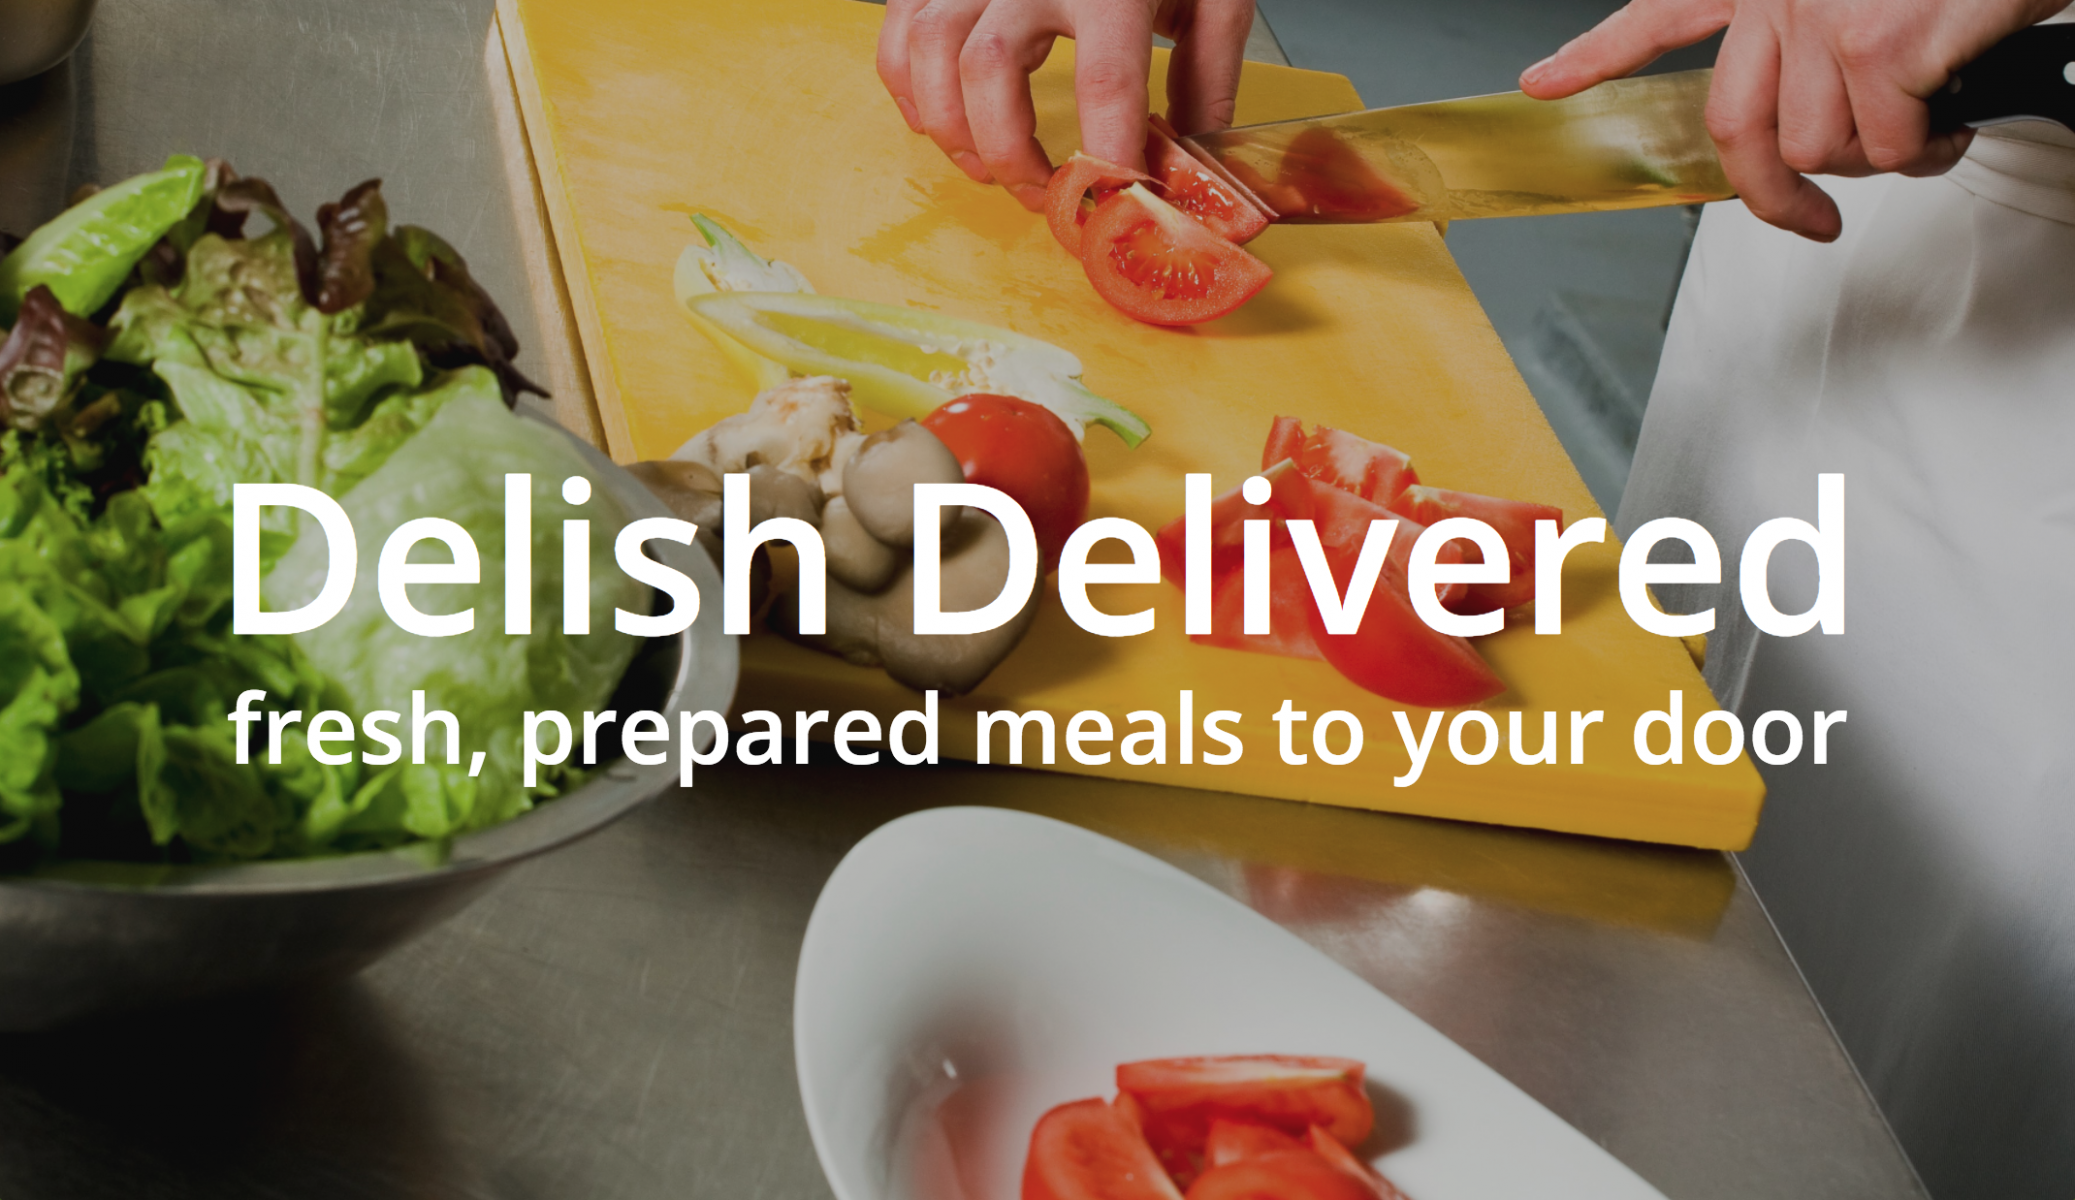 Delish Delivered  Fresh, Prepared Dinners To Your Door - Food Recipes Delivered